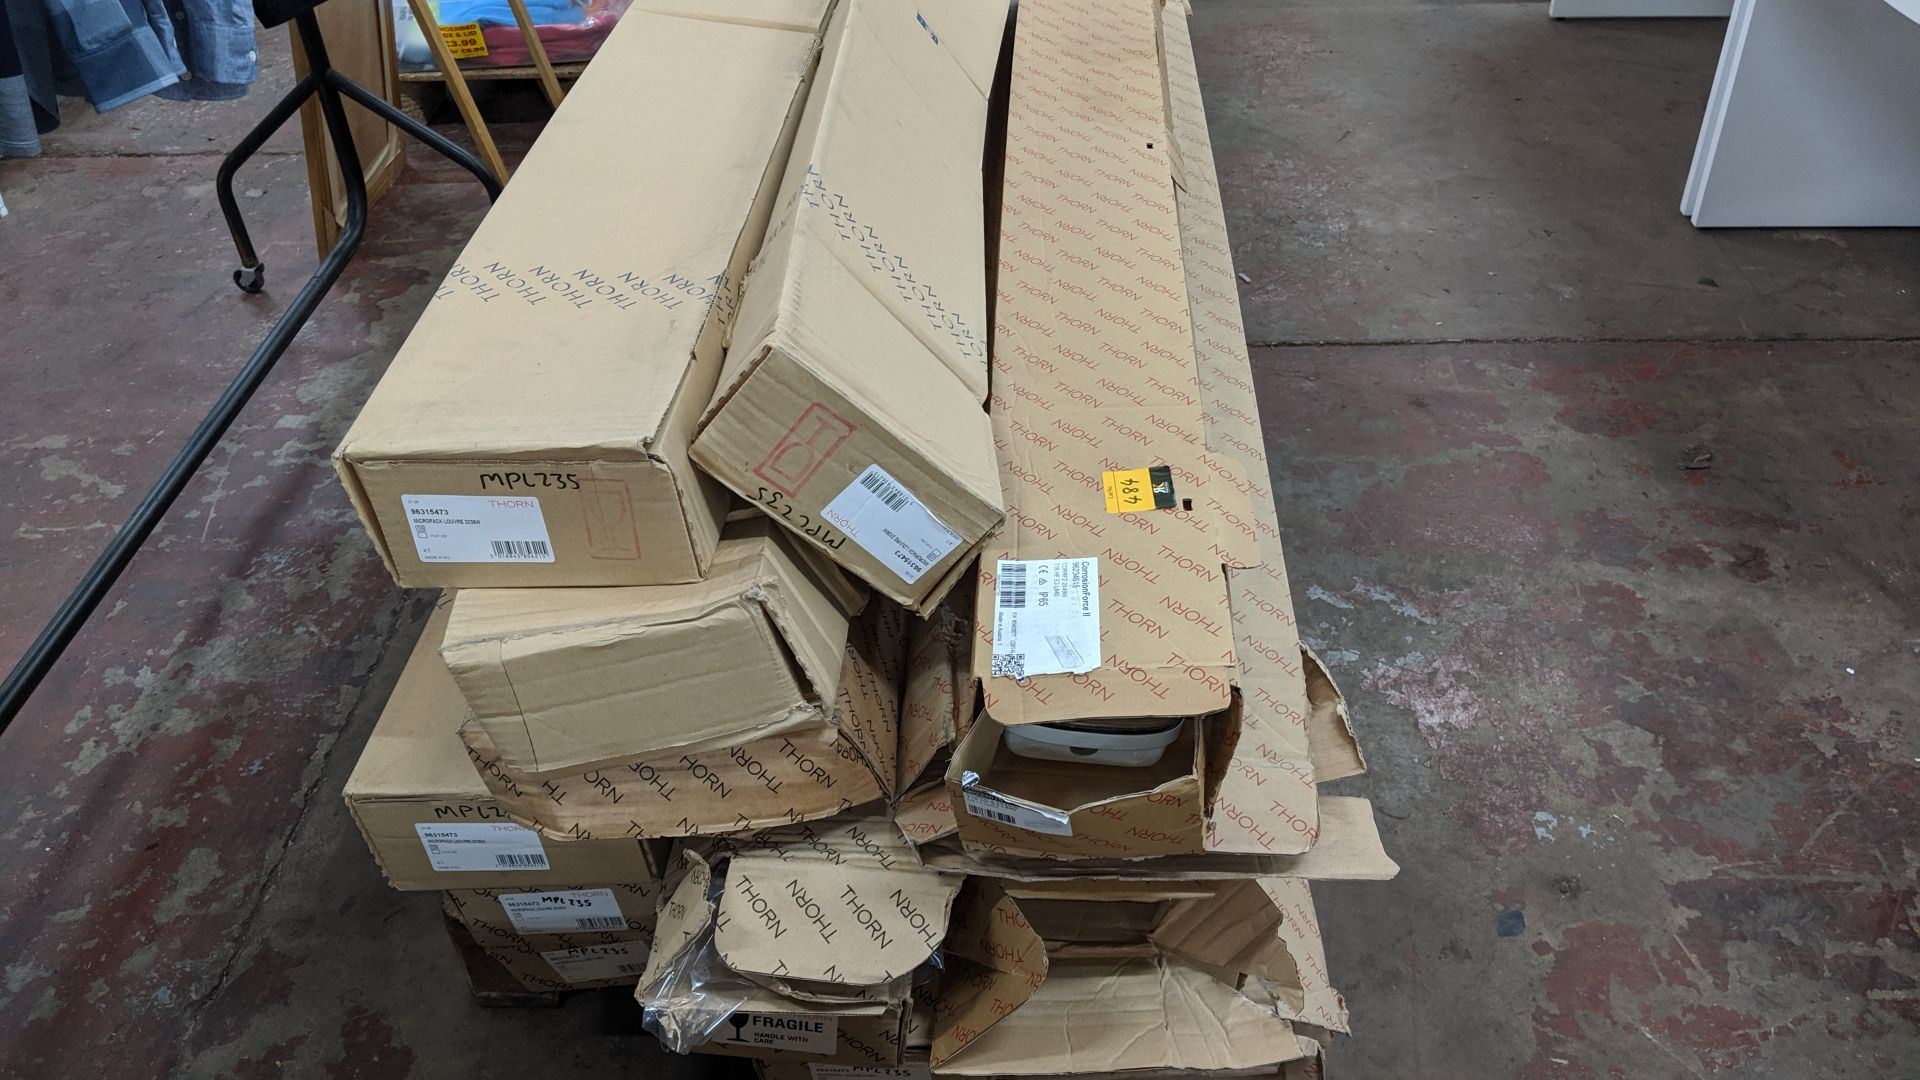 Lot 484 - Contents of a pallet of fluorescent light fittings - pallet excluded. IMPORTANT: Please remember